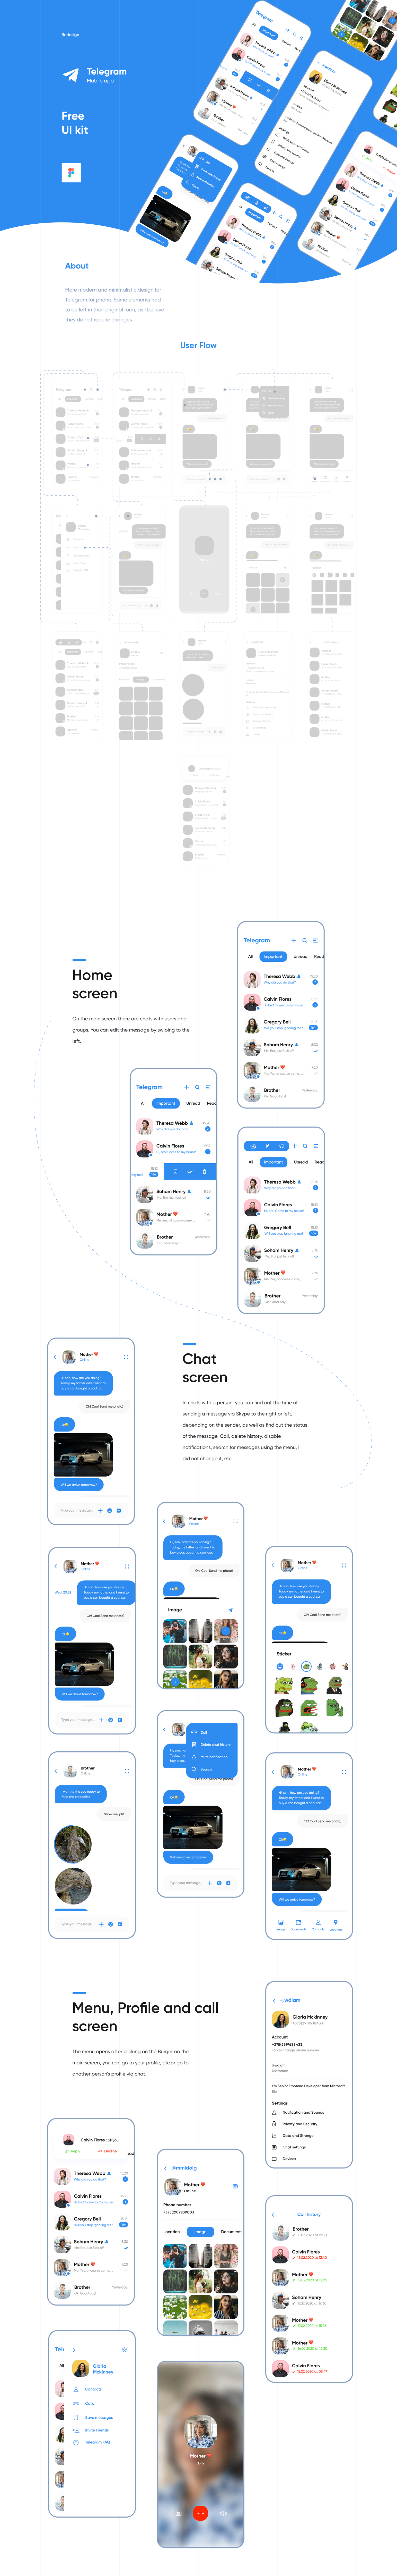 Telegram App UI Kit for Figma - Minimal and clean app design, 13 screens for you to get started.